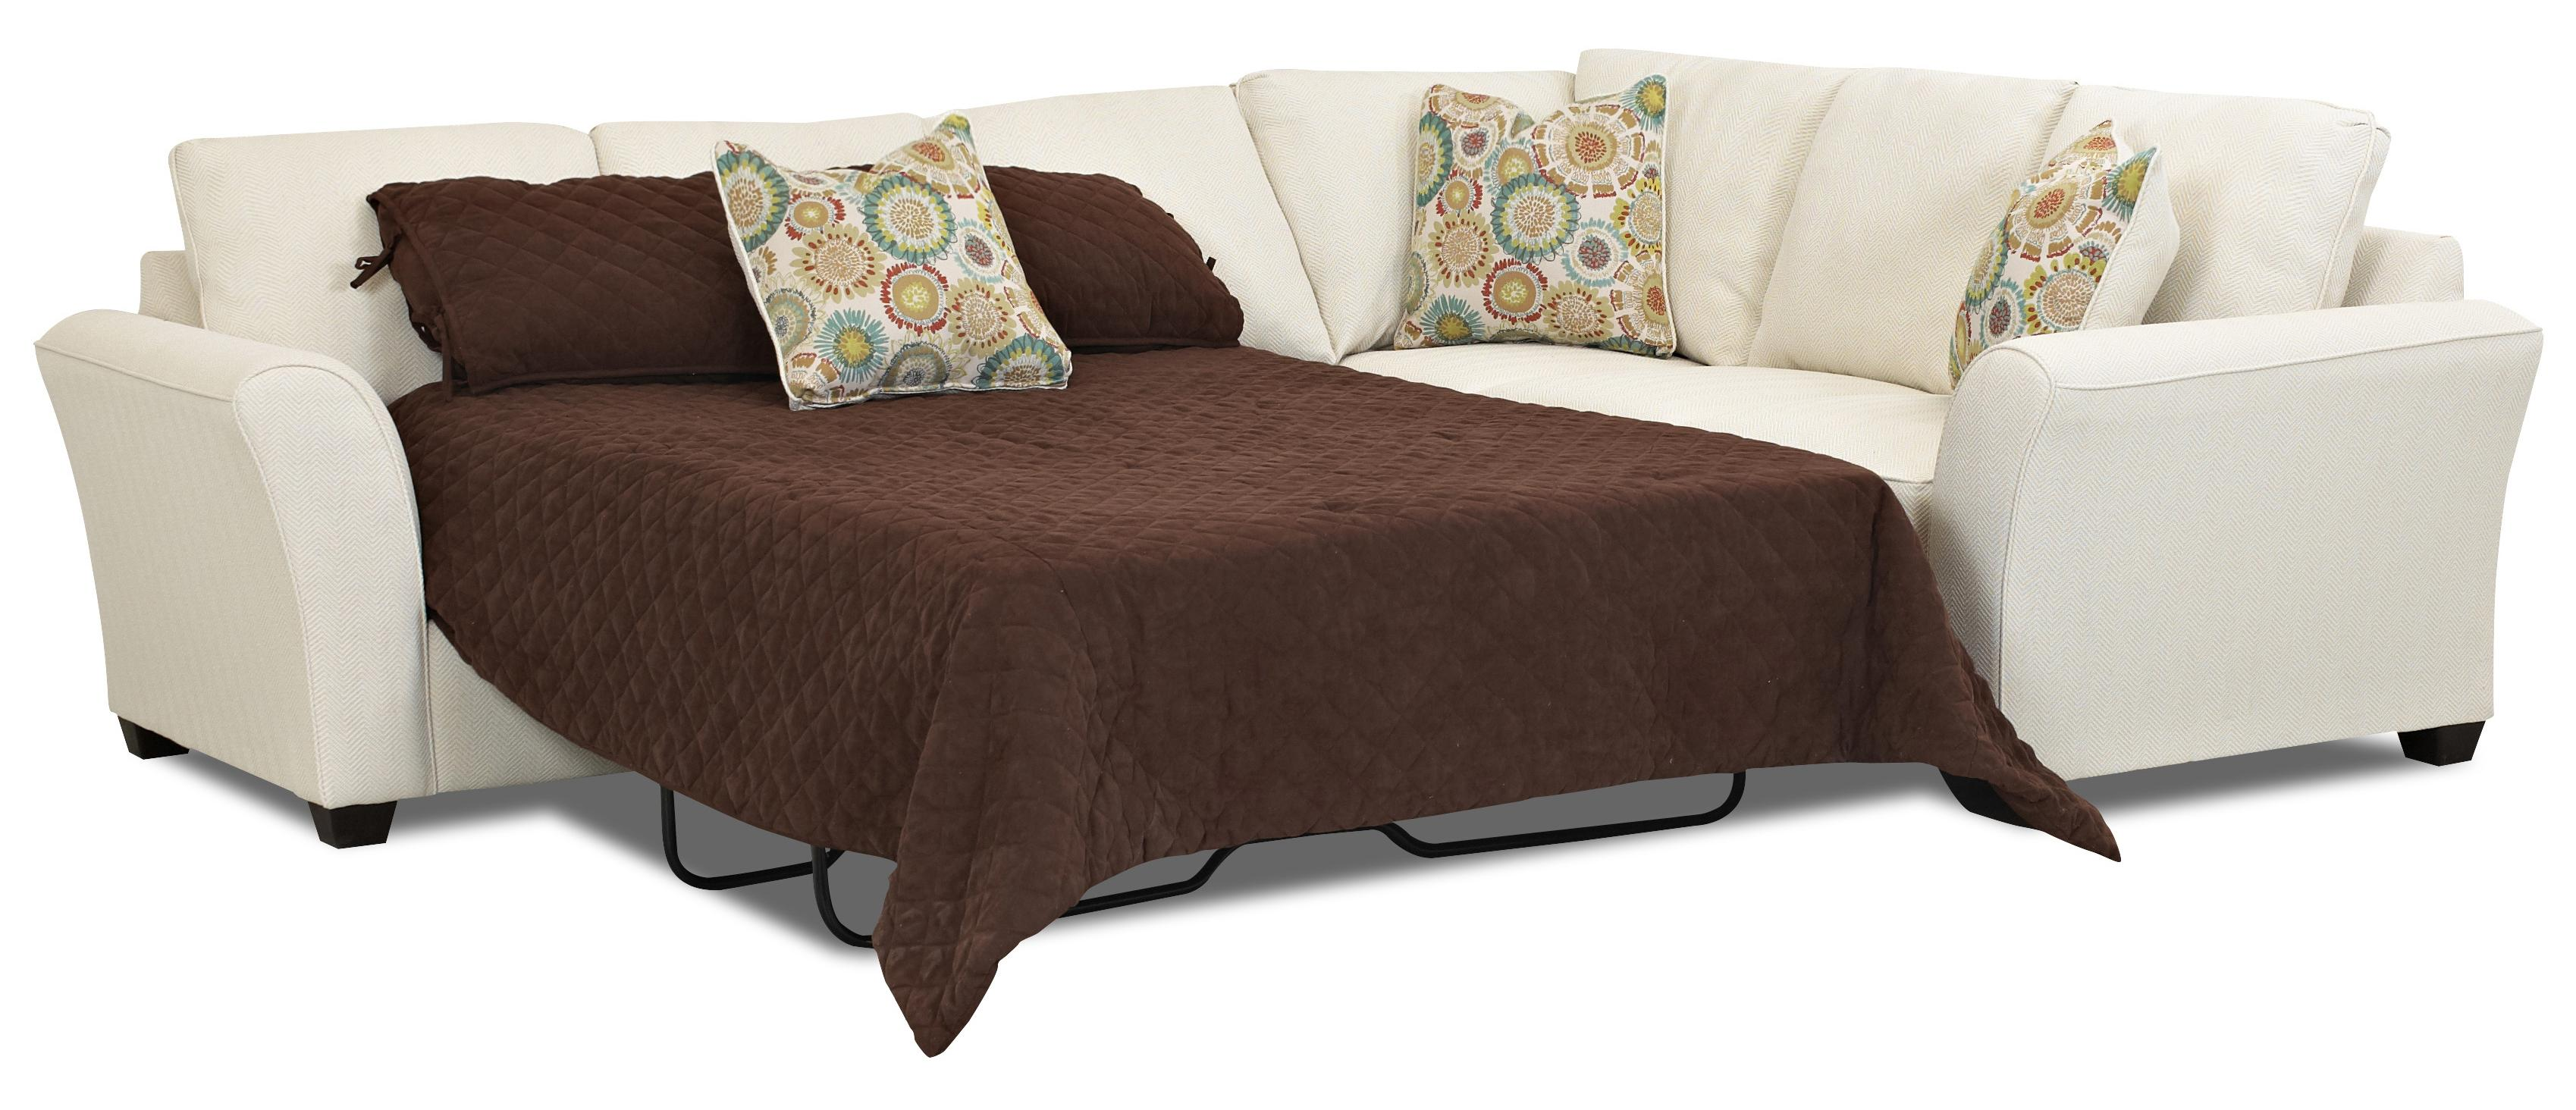 Transitional Sectional Sleeper Sofa With Dreamquest Mattress By - Convertible sofa bed sectional